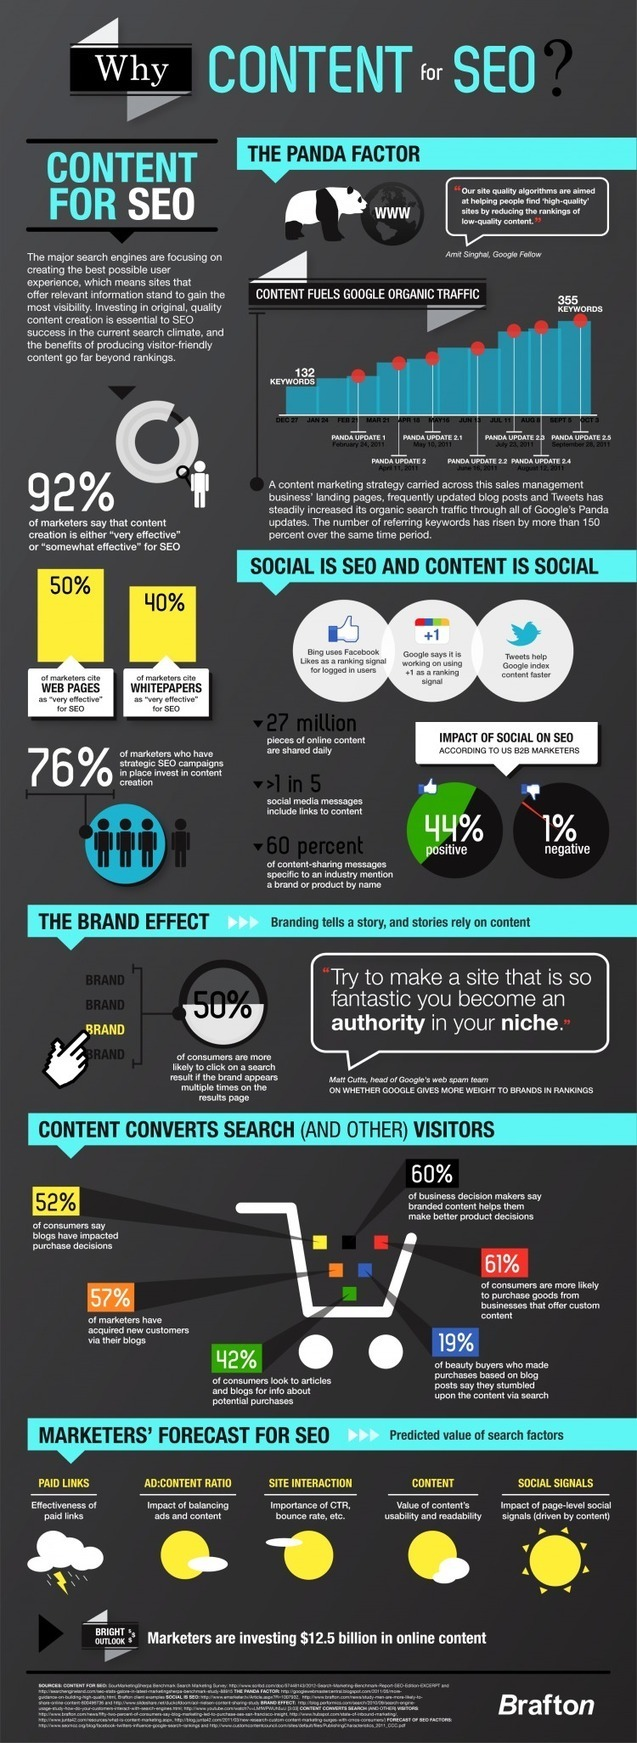 Impact of Social on SEO